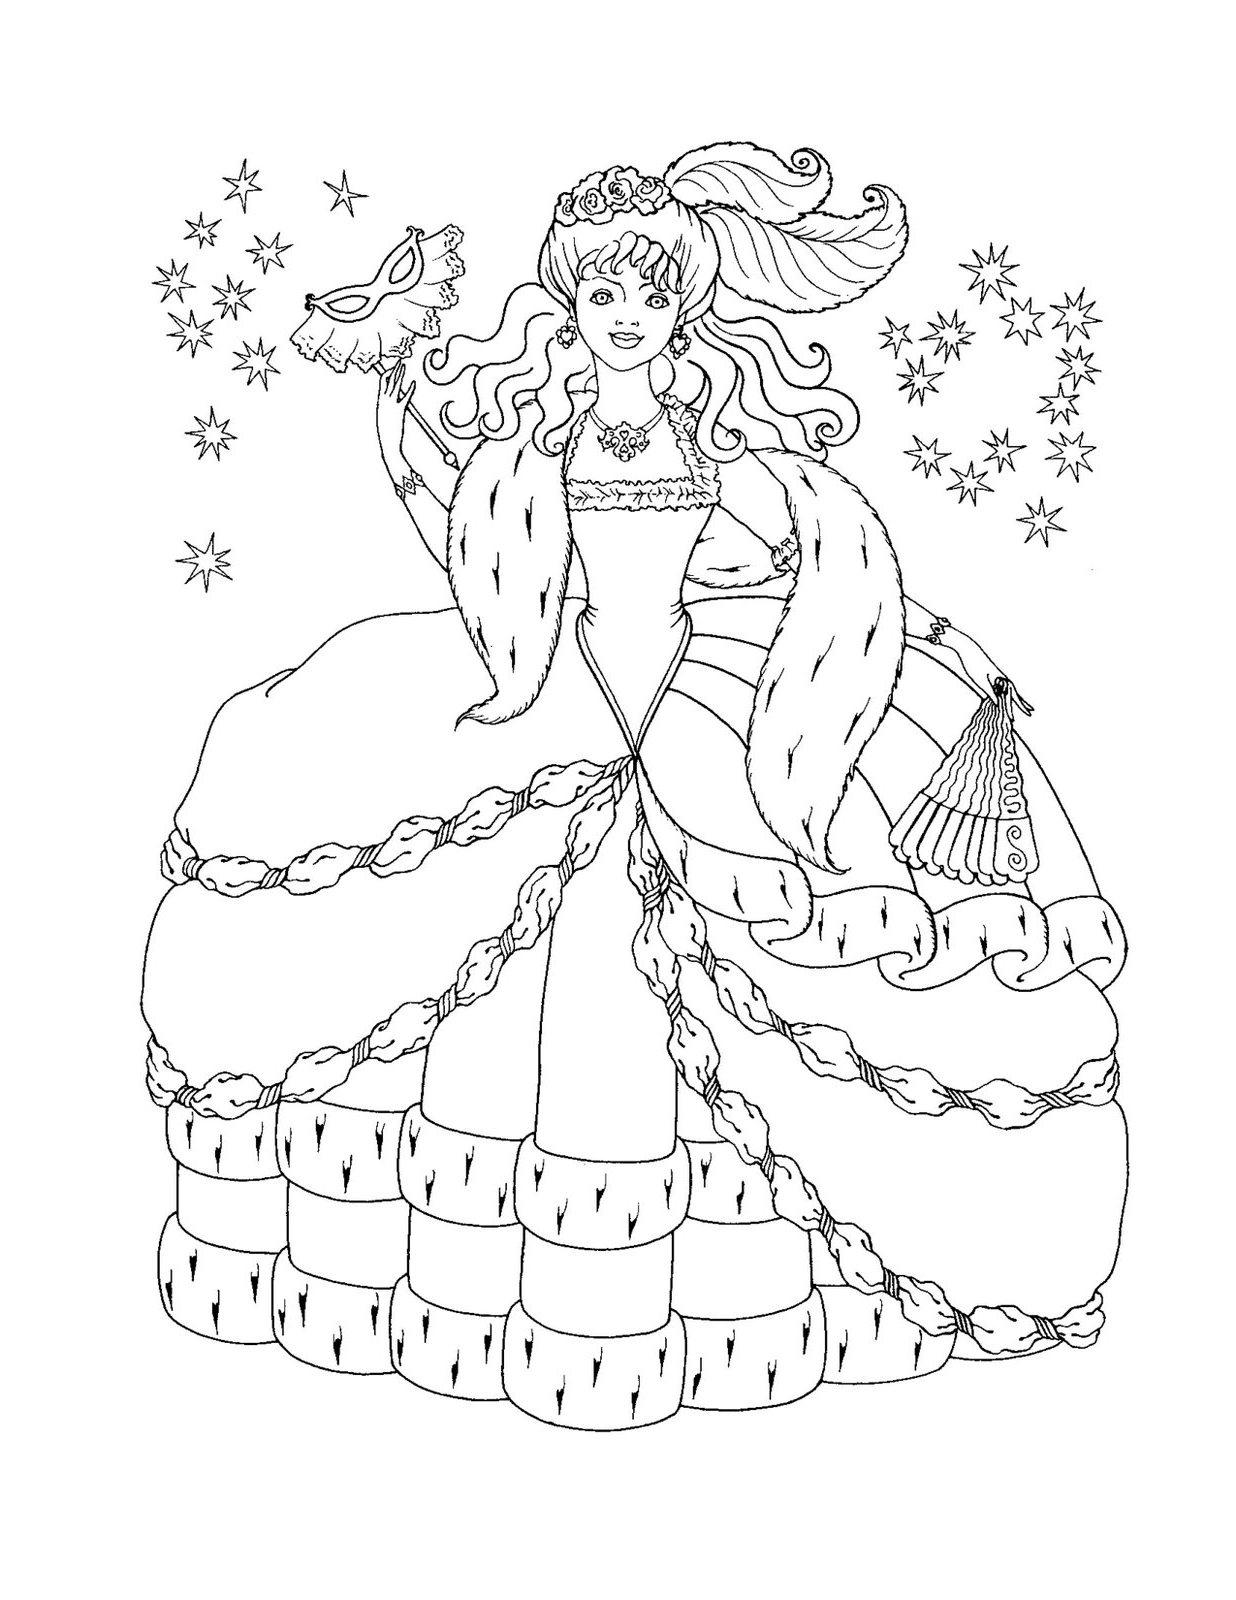 Free Printable Disney Princess Coloring Pages For Kids Ariel Princess Coloring Page Free Coloring Sheets